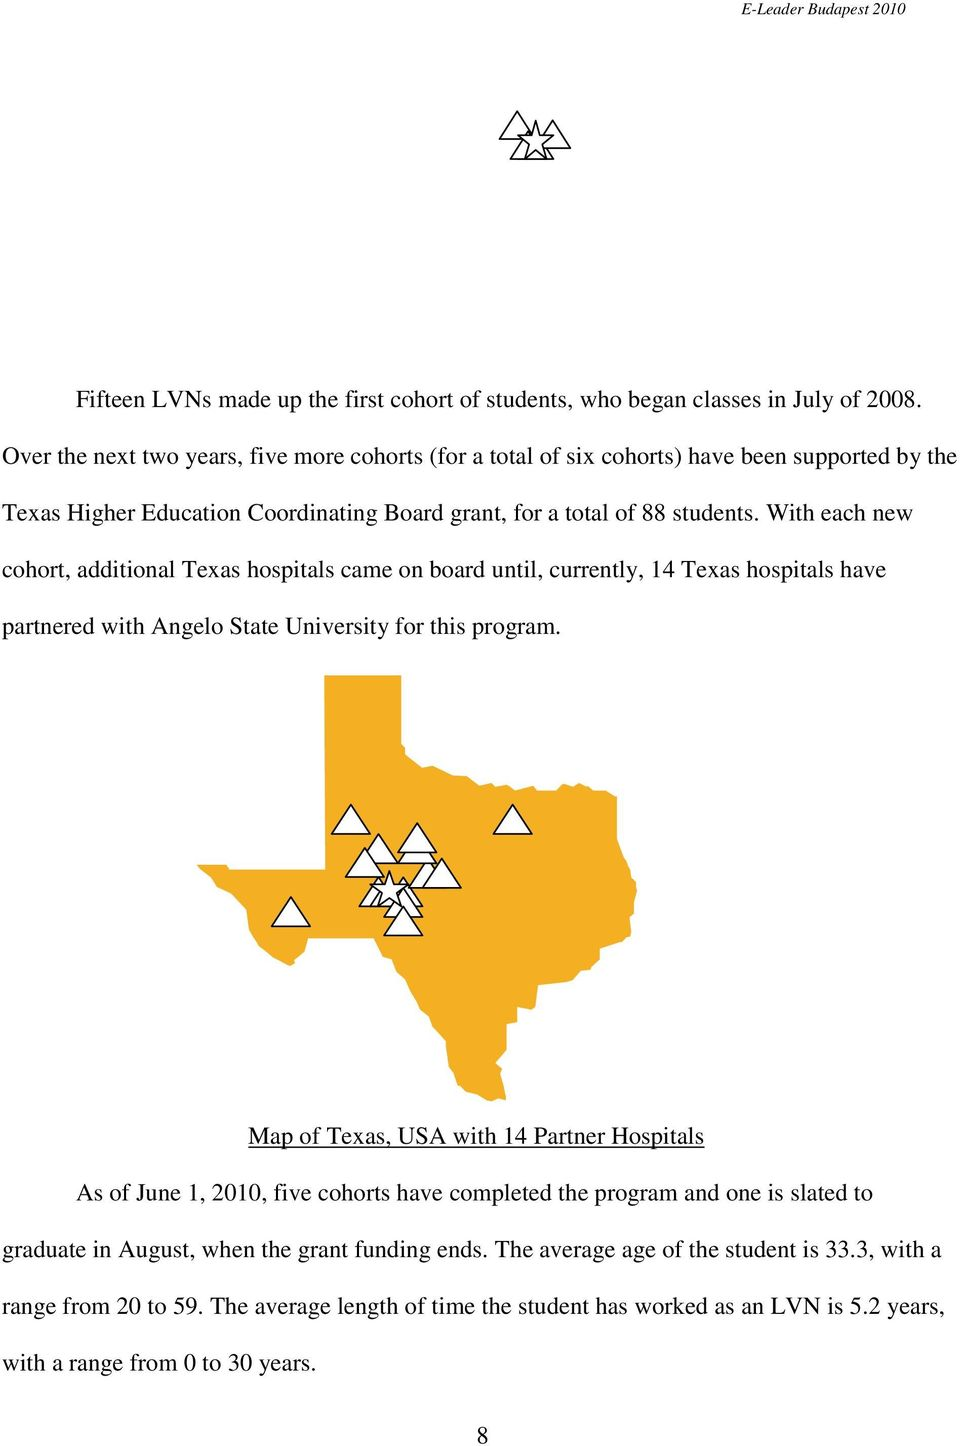 With each new cohort, additional Texas hospitals came on board until, currently, 14 Texas hospitals have partnered with Angelo State University for this program.